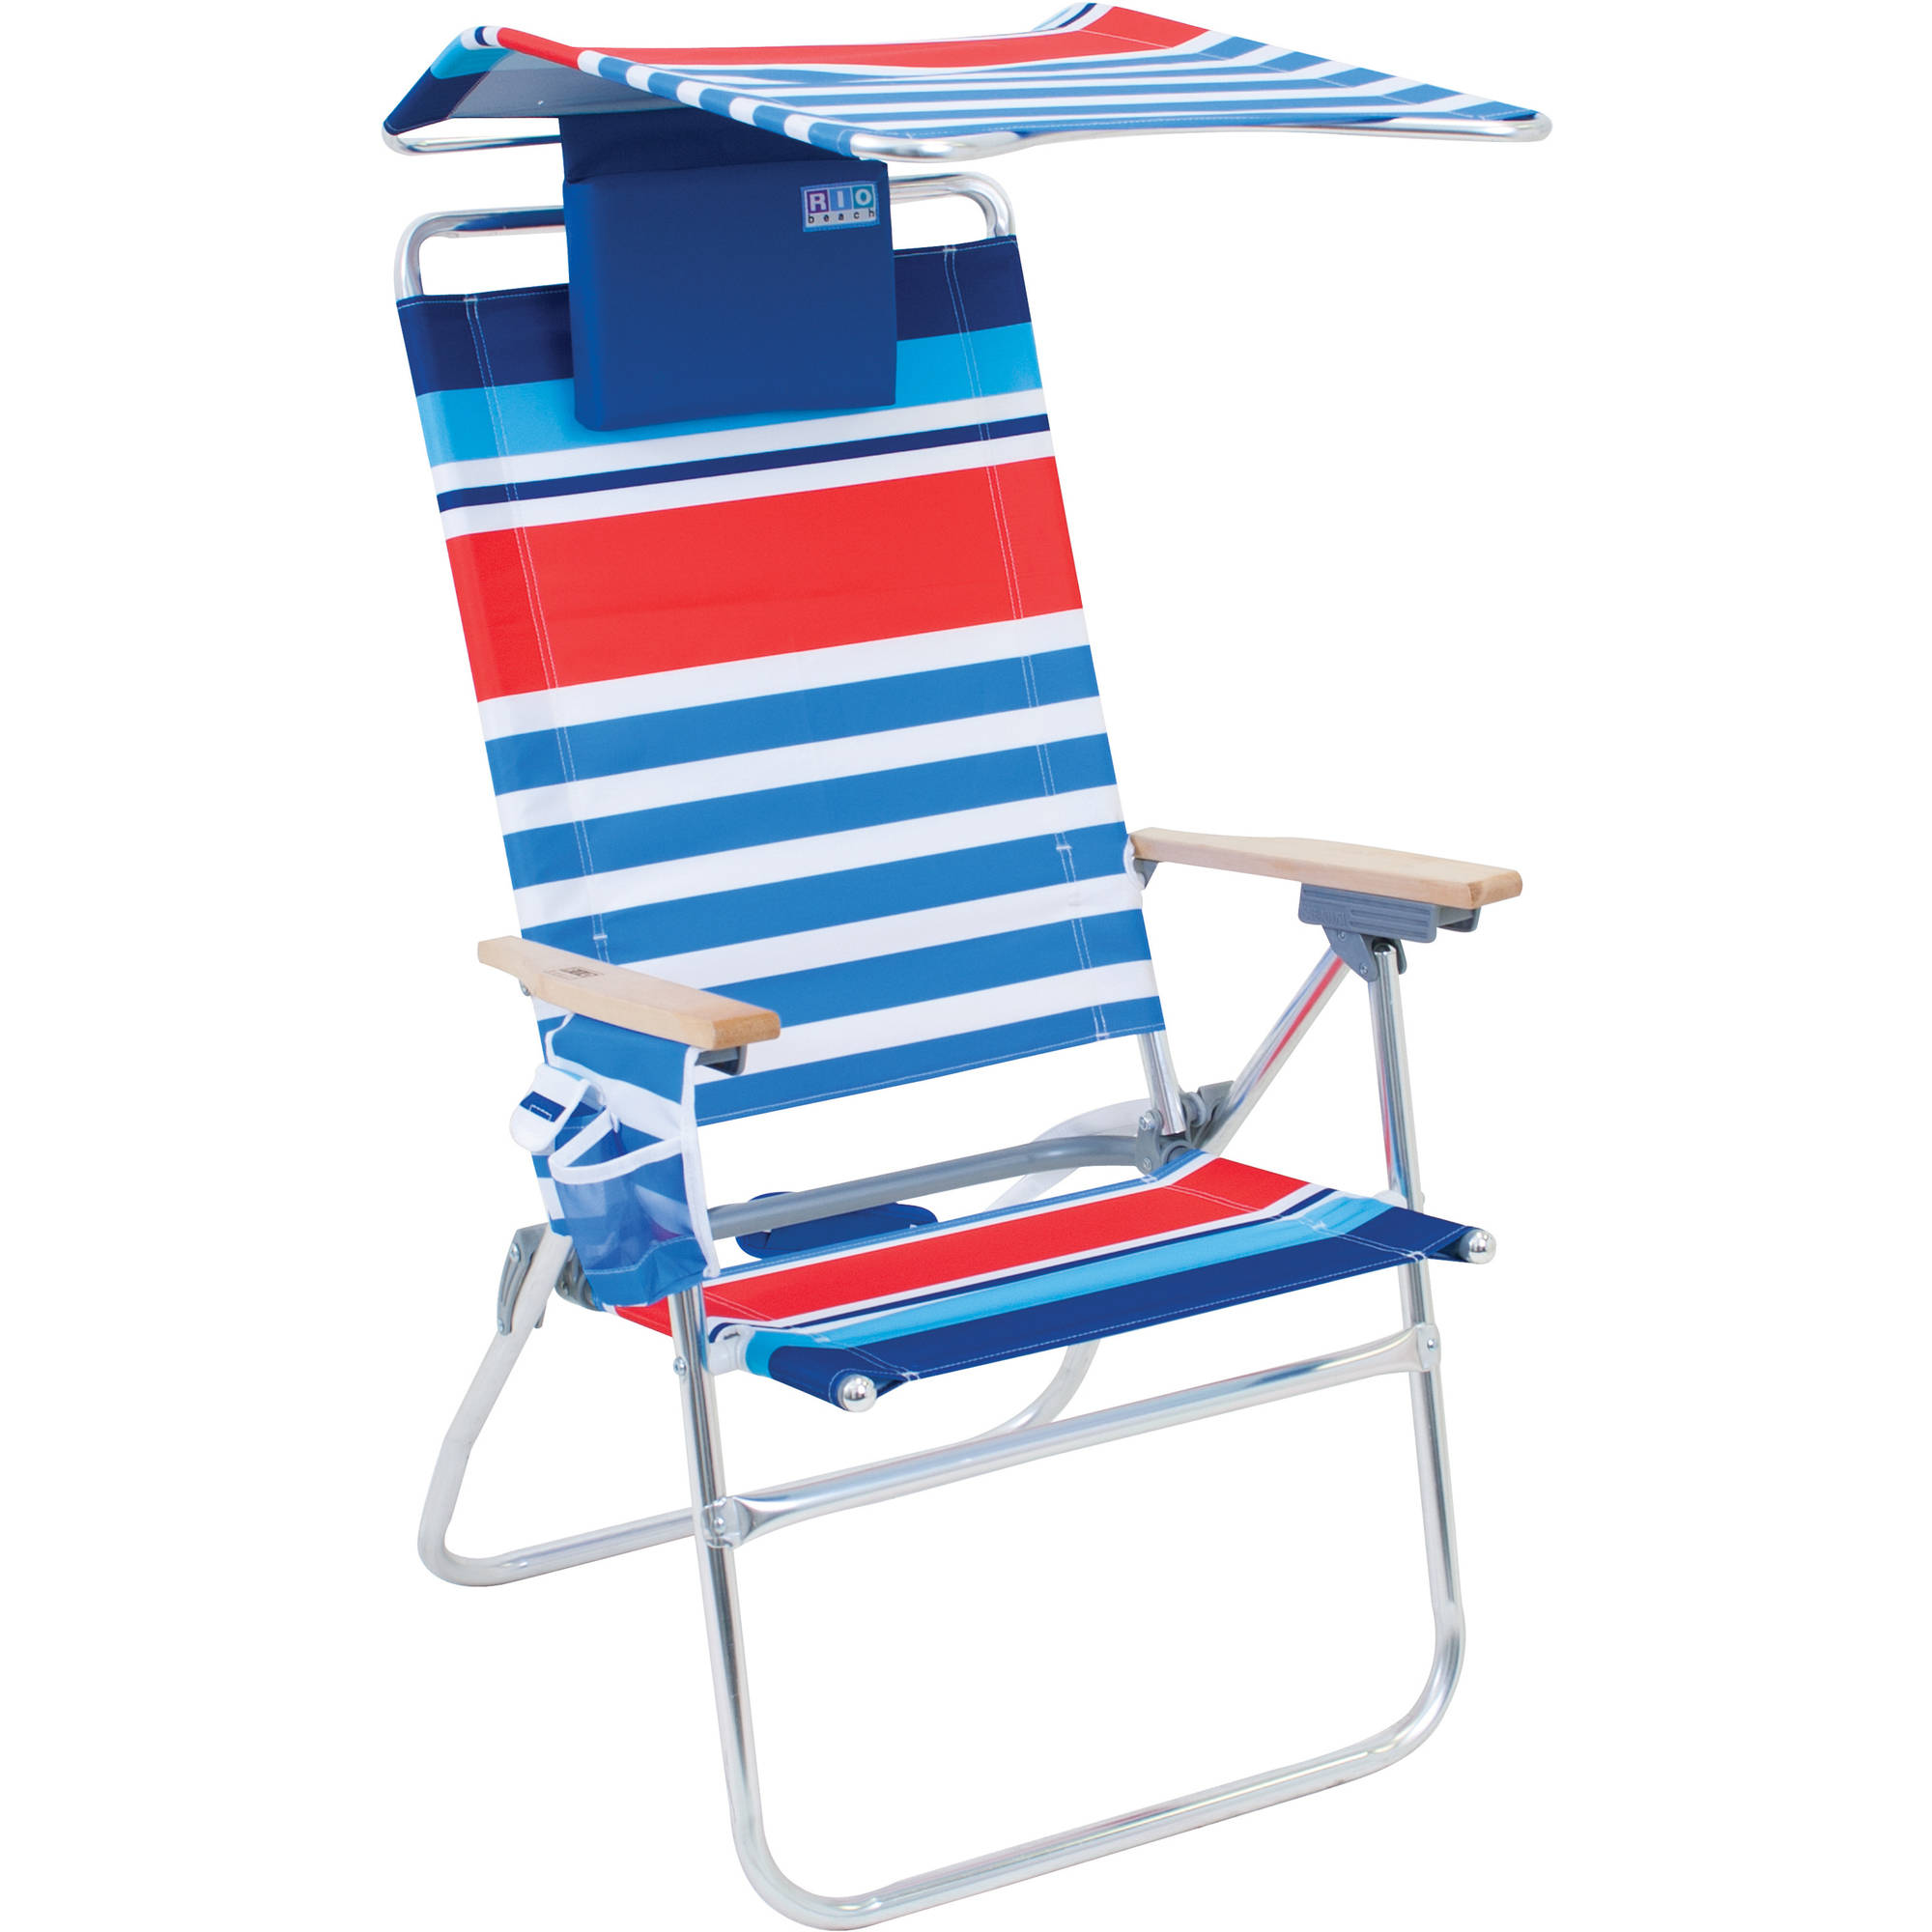 Beach lounge chair portable - Beach Lounge Chair Portable 42